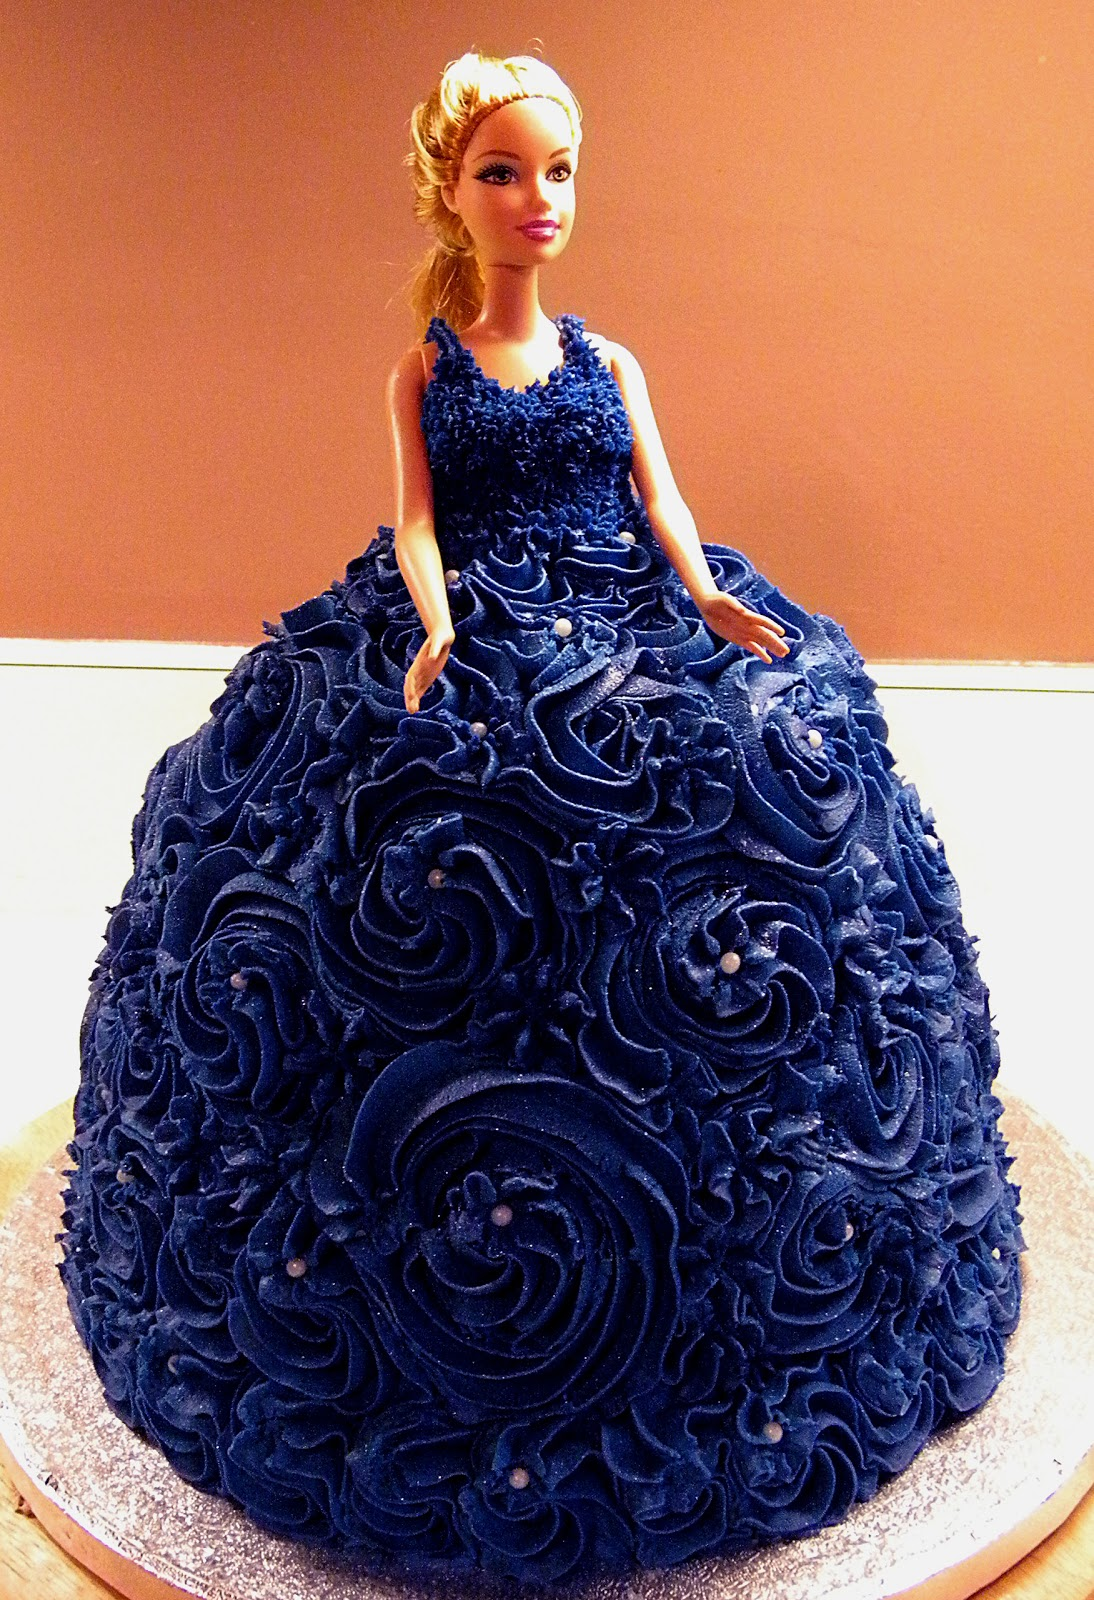 Cake and Jewelry: The Barbie cake